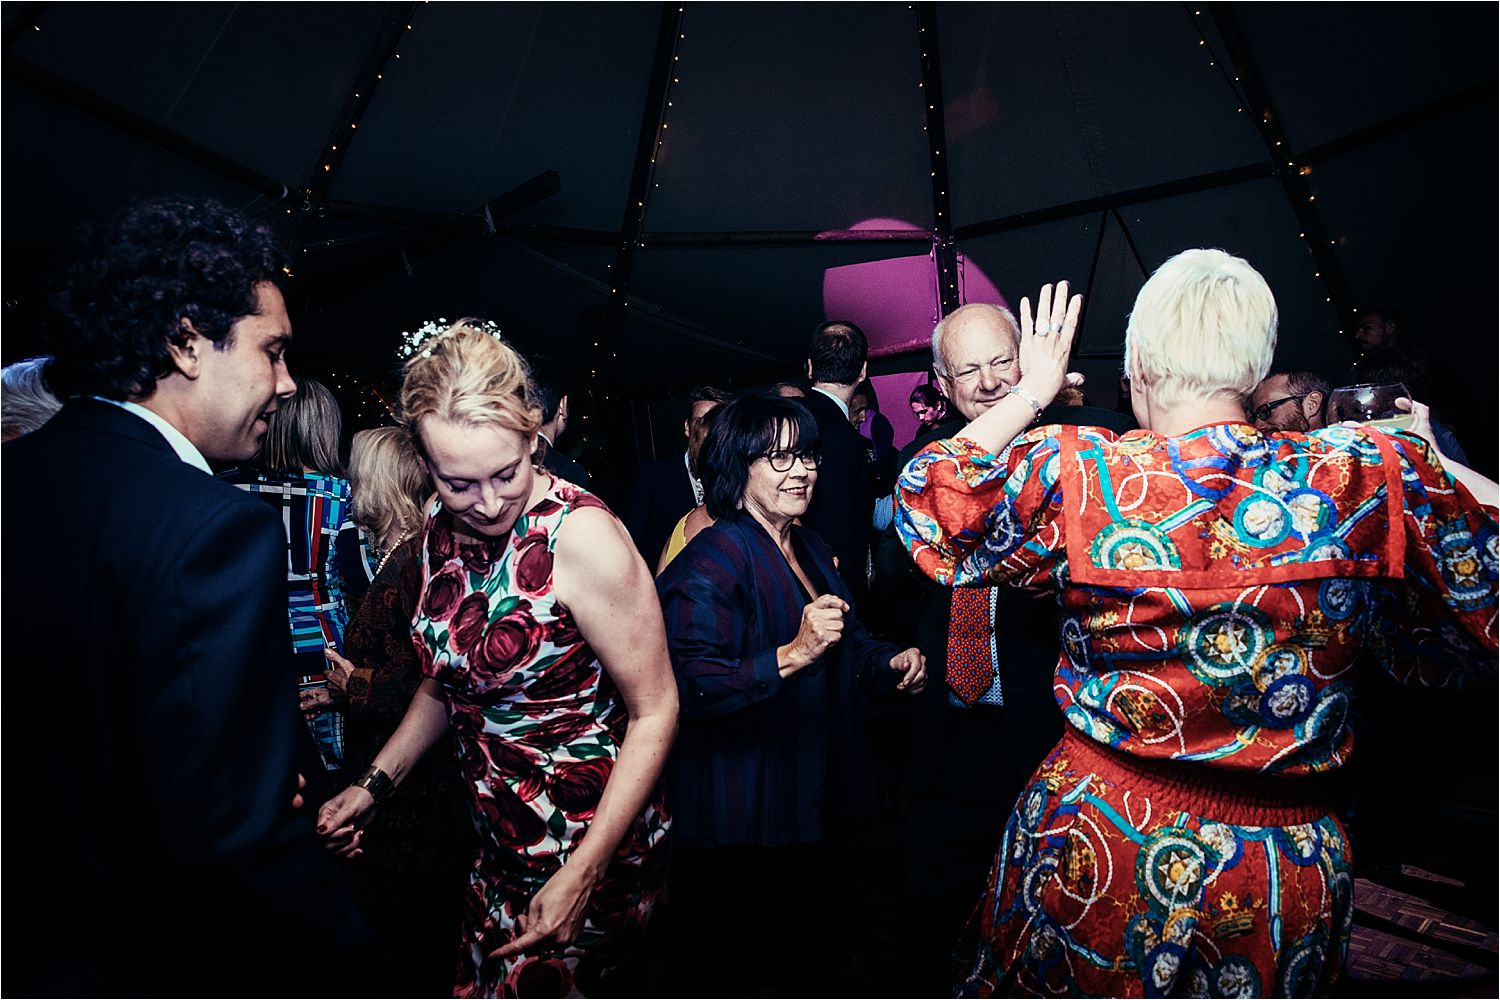 Dancing guests at Manchester tipi wedding